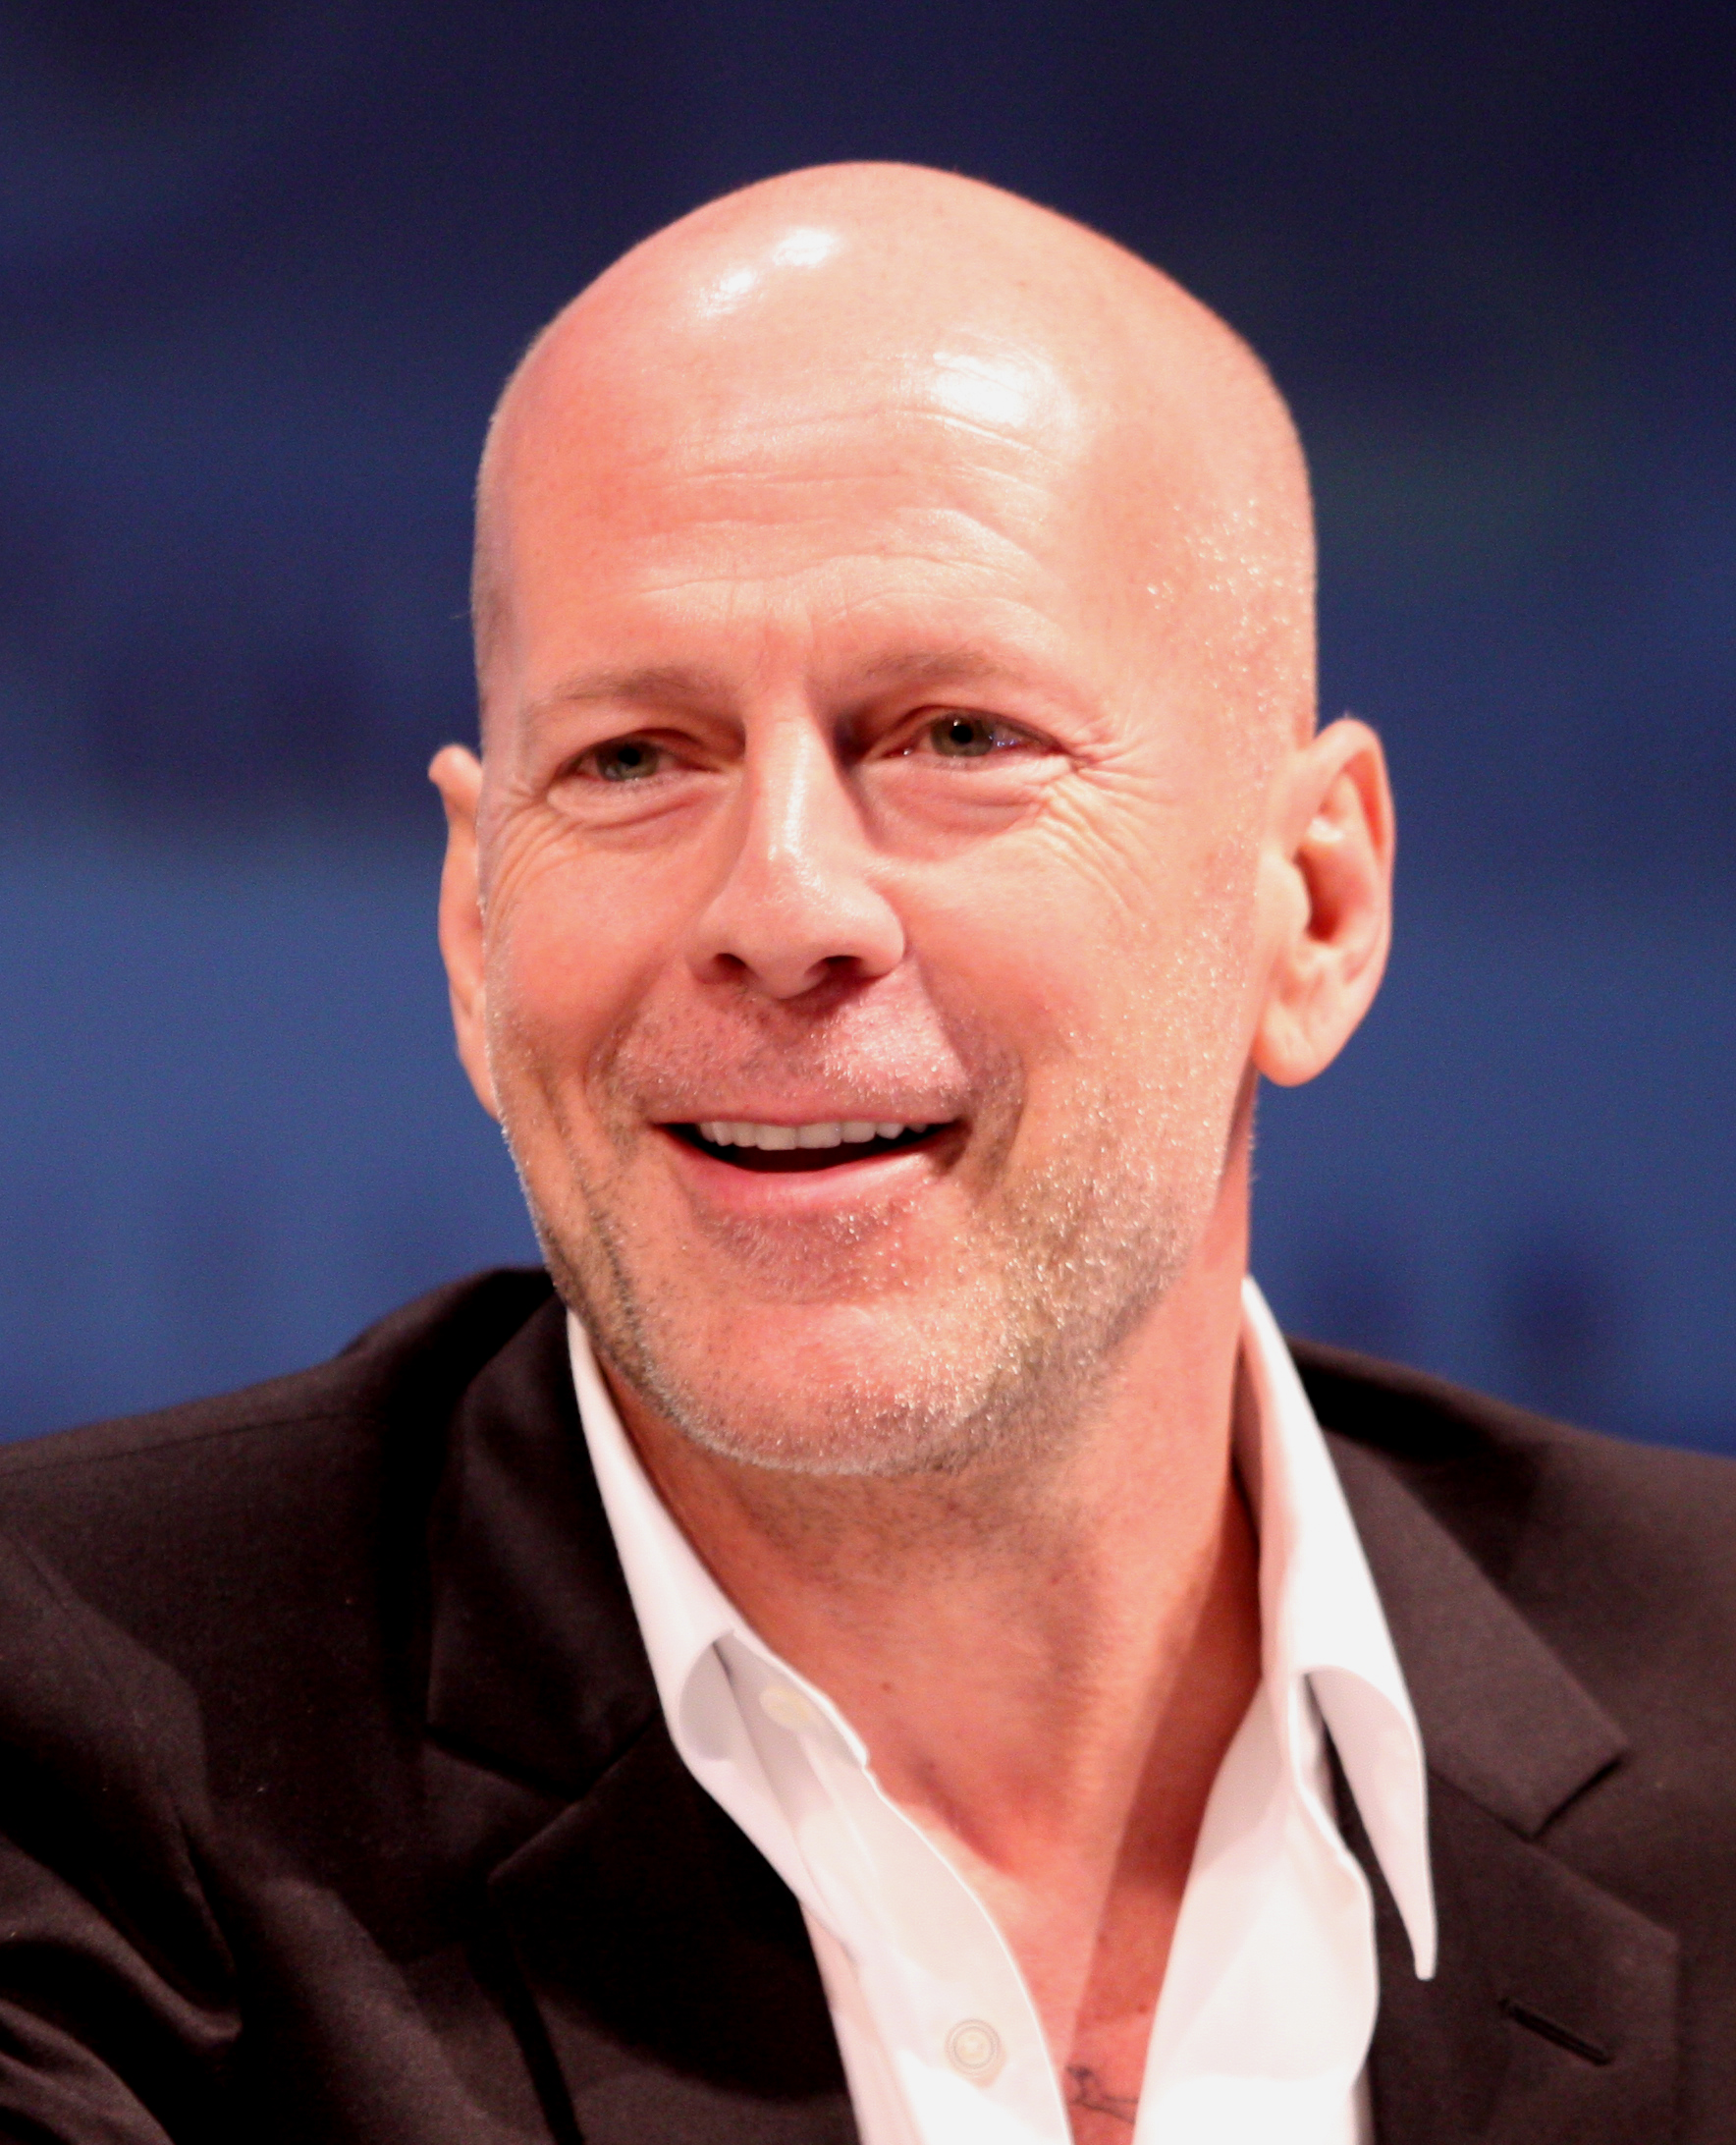 The 63-year old son of father David Willis and mother Marlene K. Bruce Willis in 2018 photo. Bruce Willis earned a  million dollar salary - leaving the net worth at 180 million in 2018